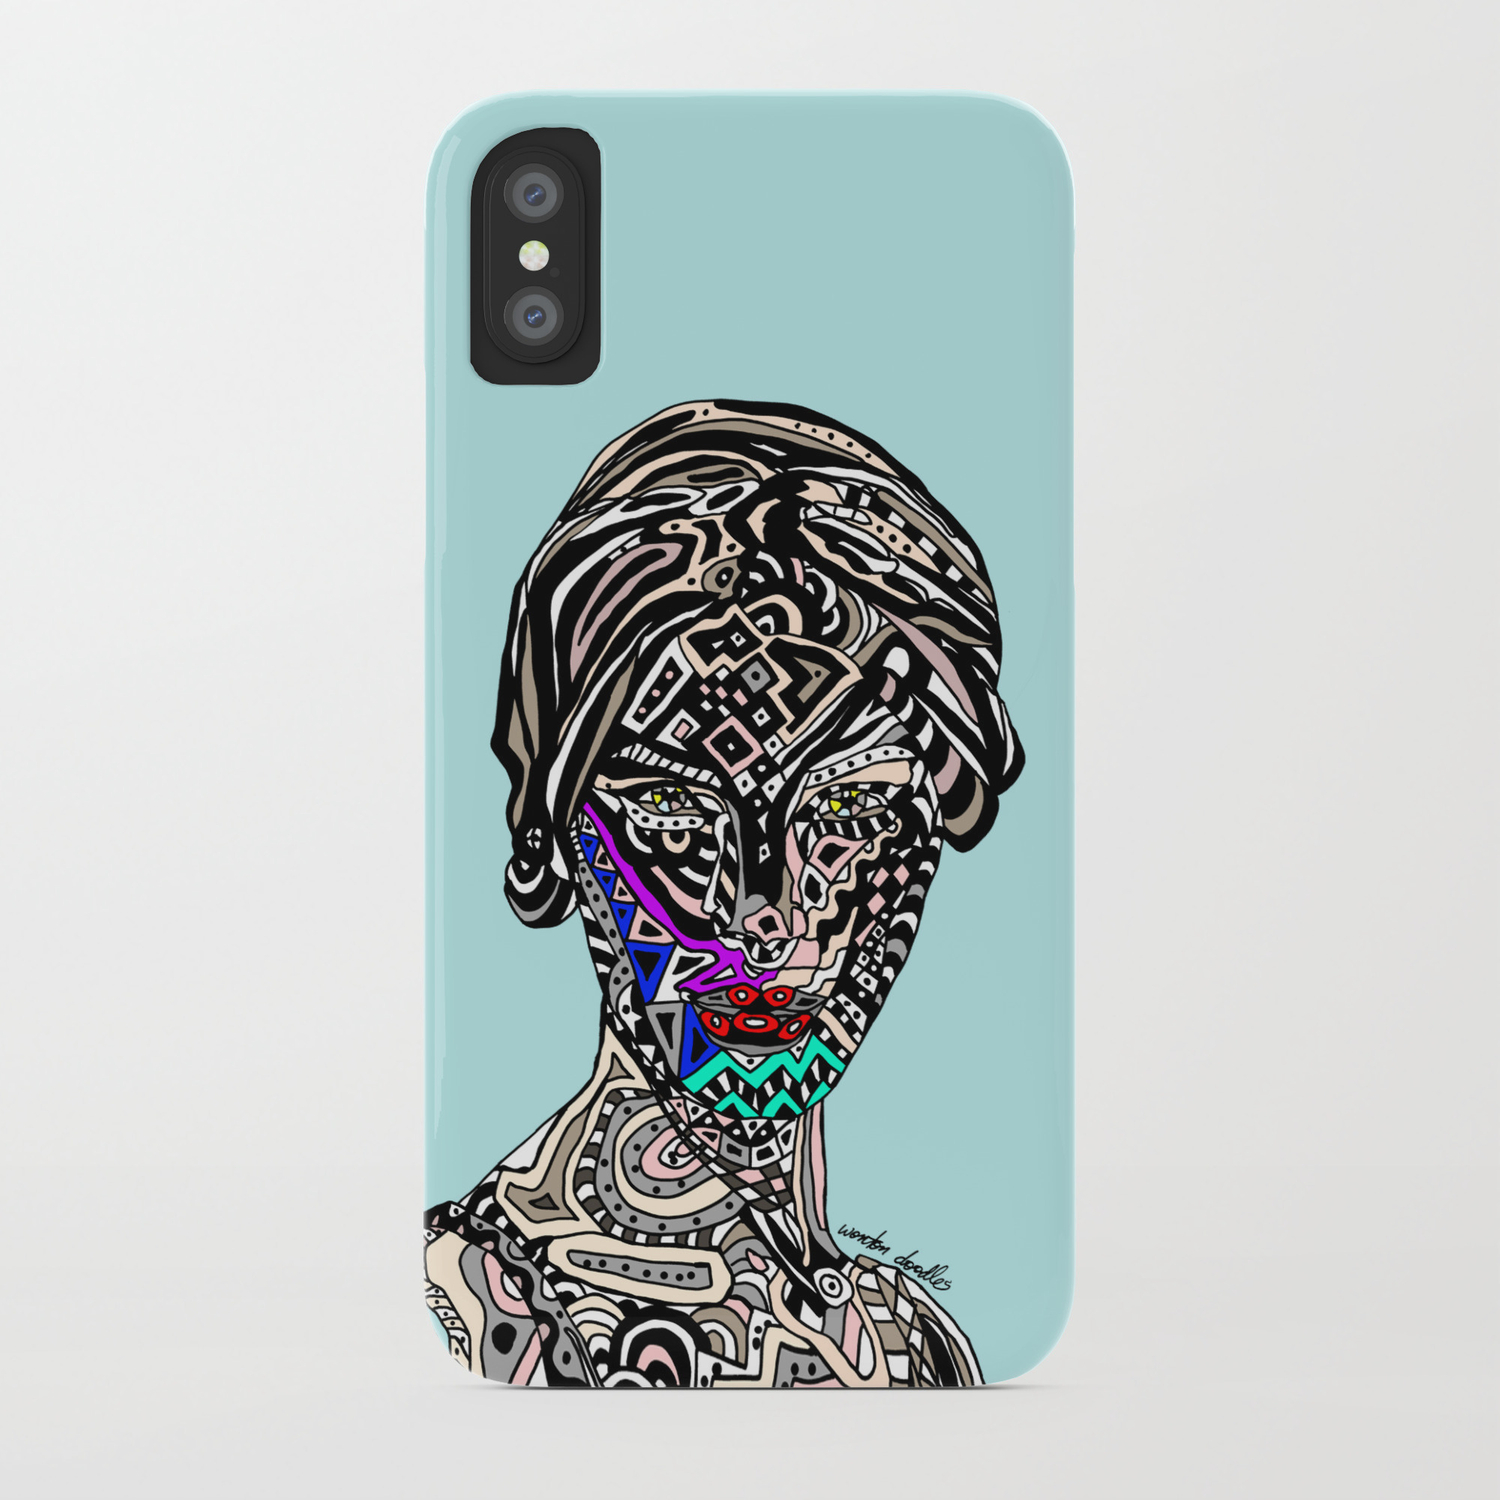 Space Goddess iphone case